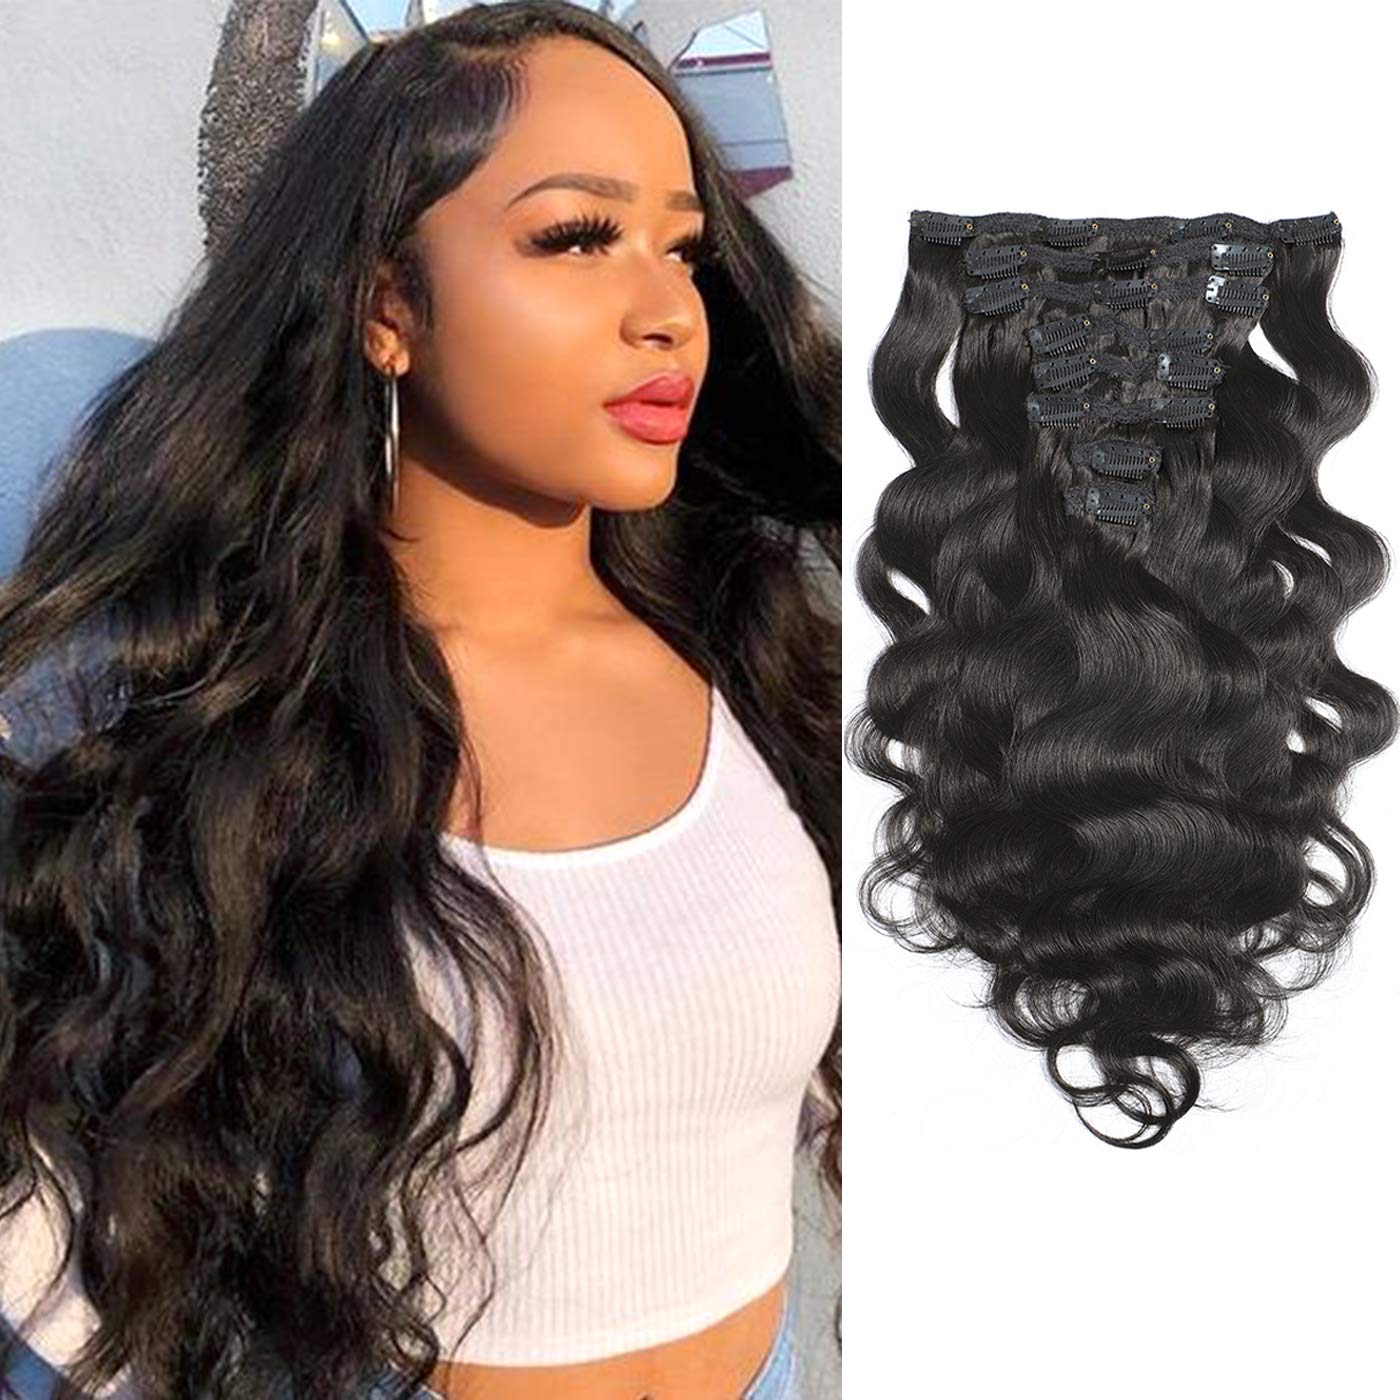 Large-scale sale Clip in Body Wave Hair Extension Brazilian Virgin Natural Store Bod 1B